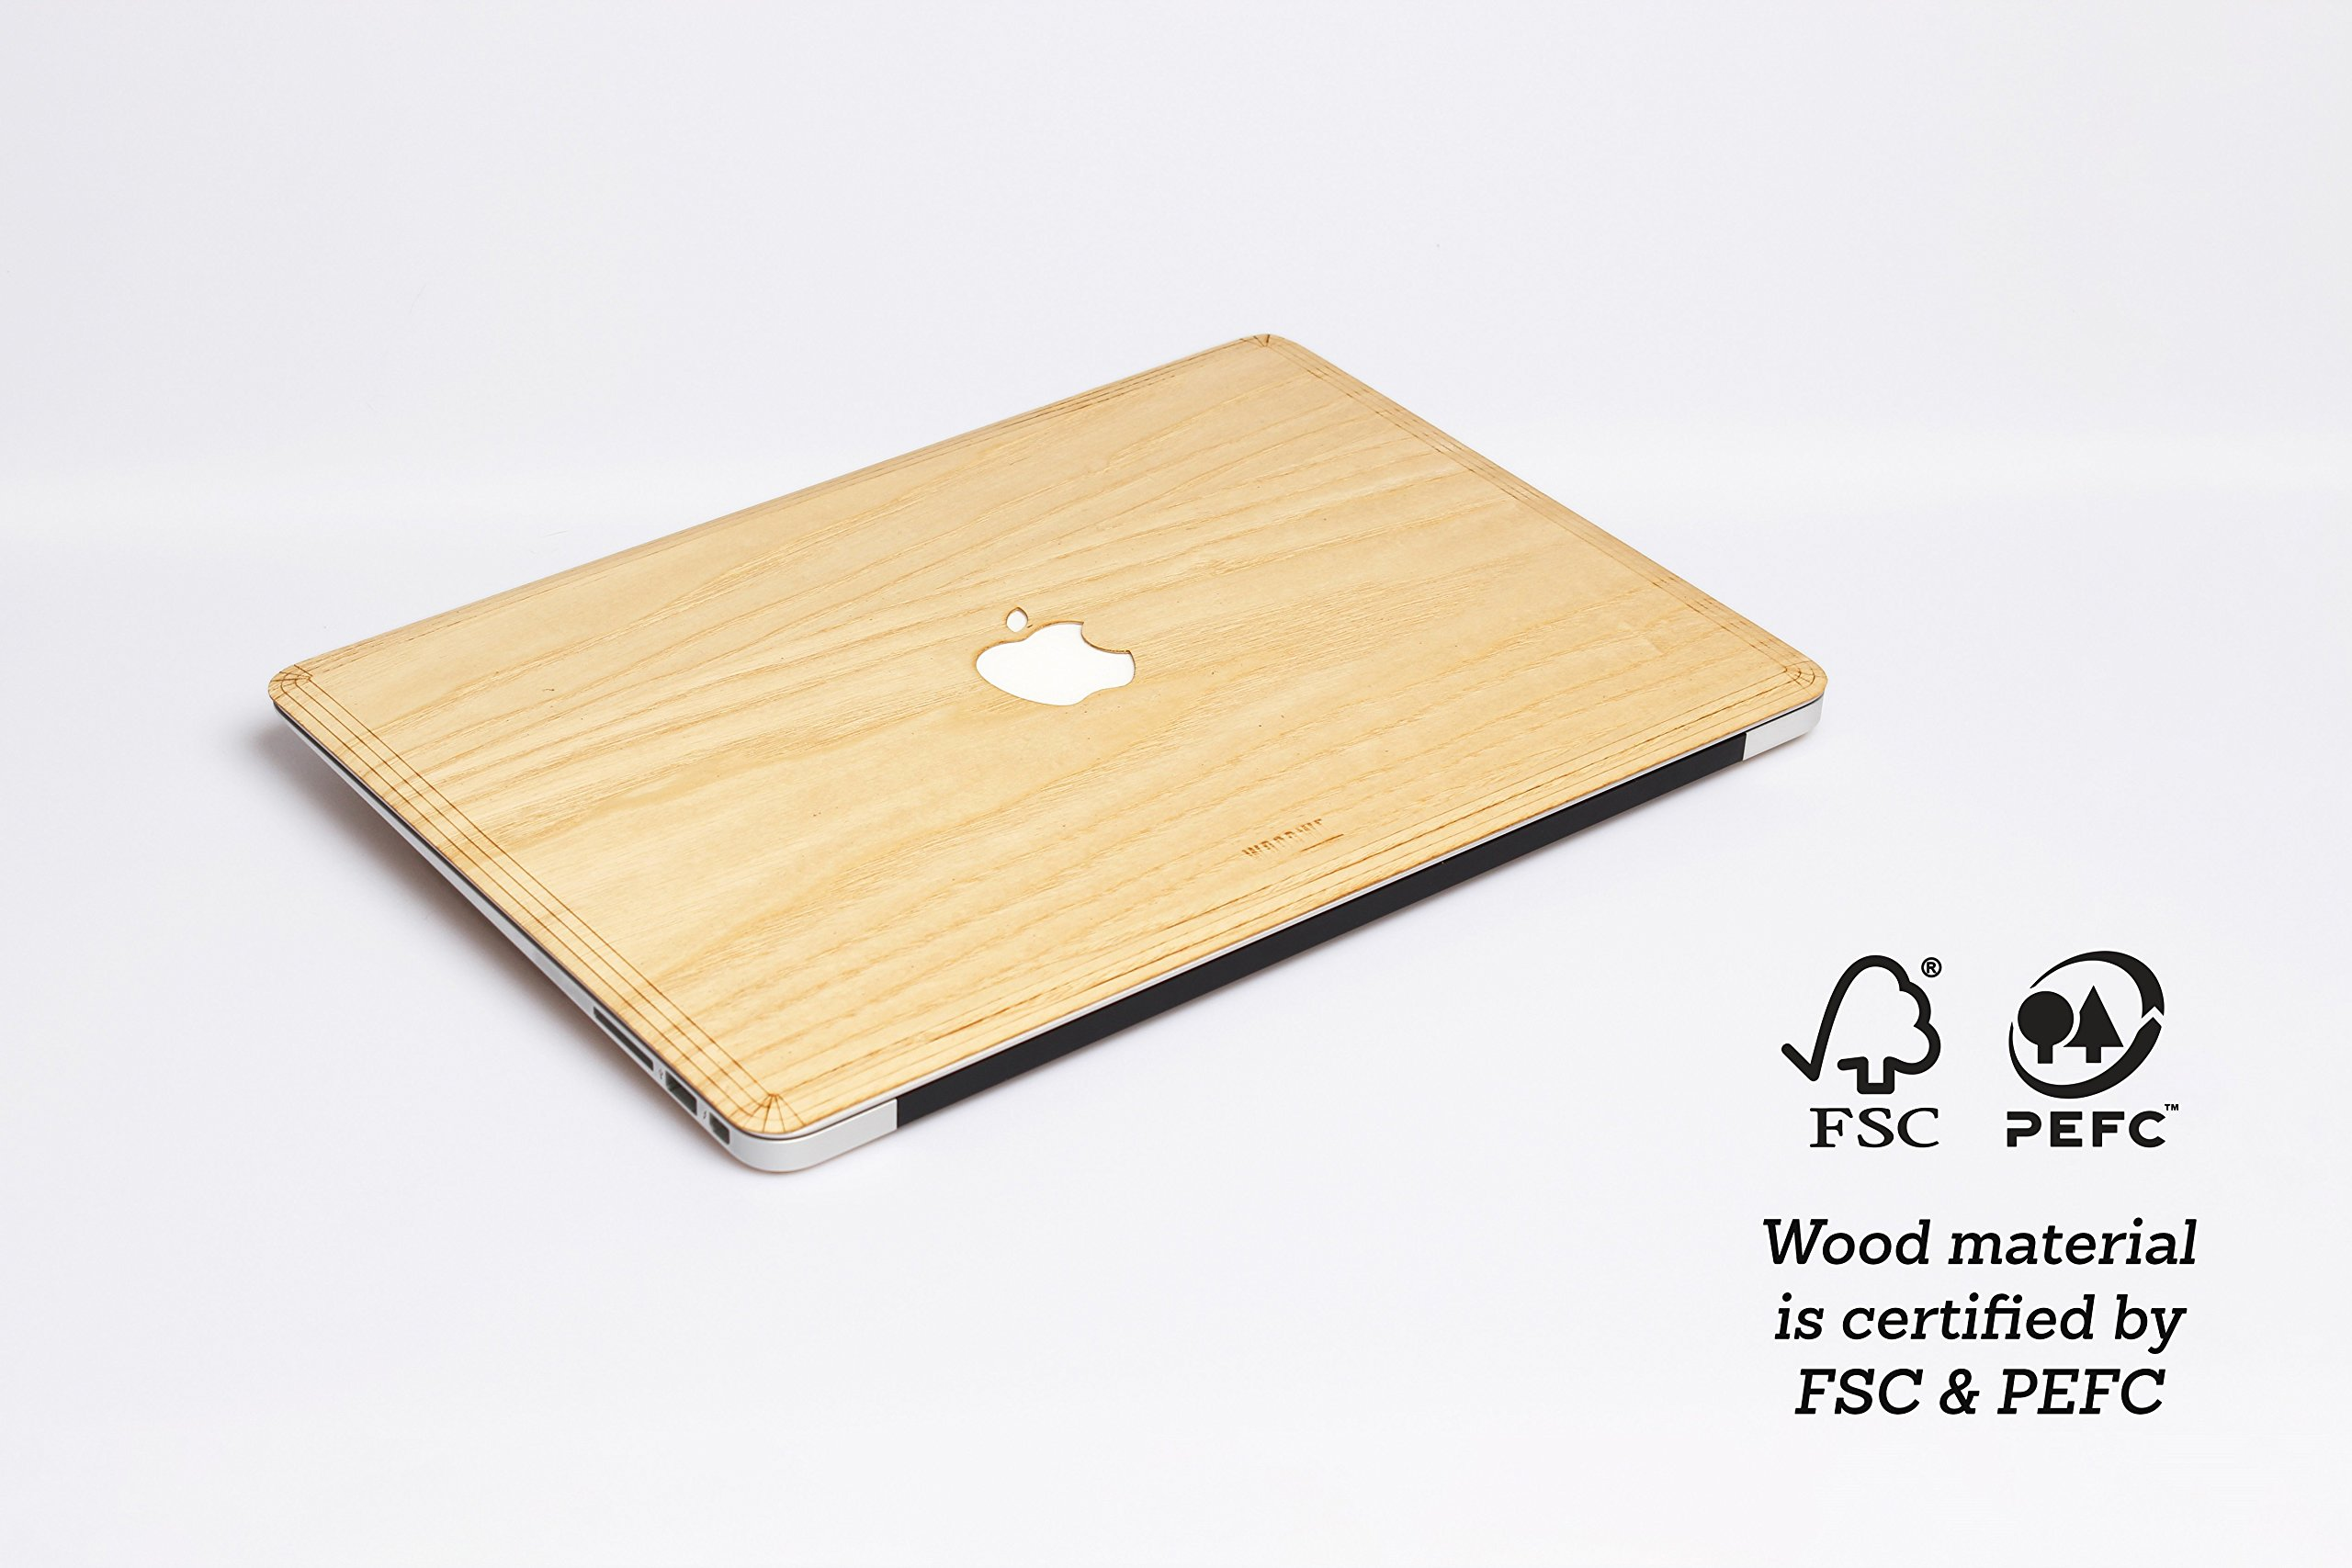 WOODWE Real Wood MacBook Skin Sticker Decal for Mac pro 15 inch Retina Display   Model: A1398; Mid 2012 – Mid 2015   Genuine & Natural ASH Wood   TOP&Bottom Cover by WOODWE (Image #3)